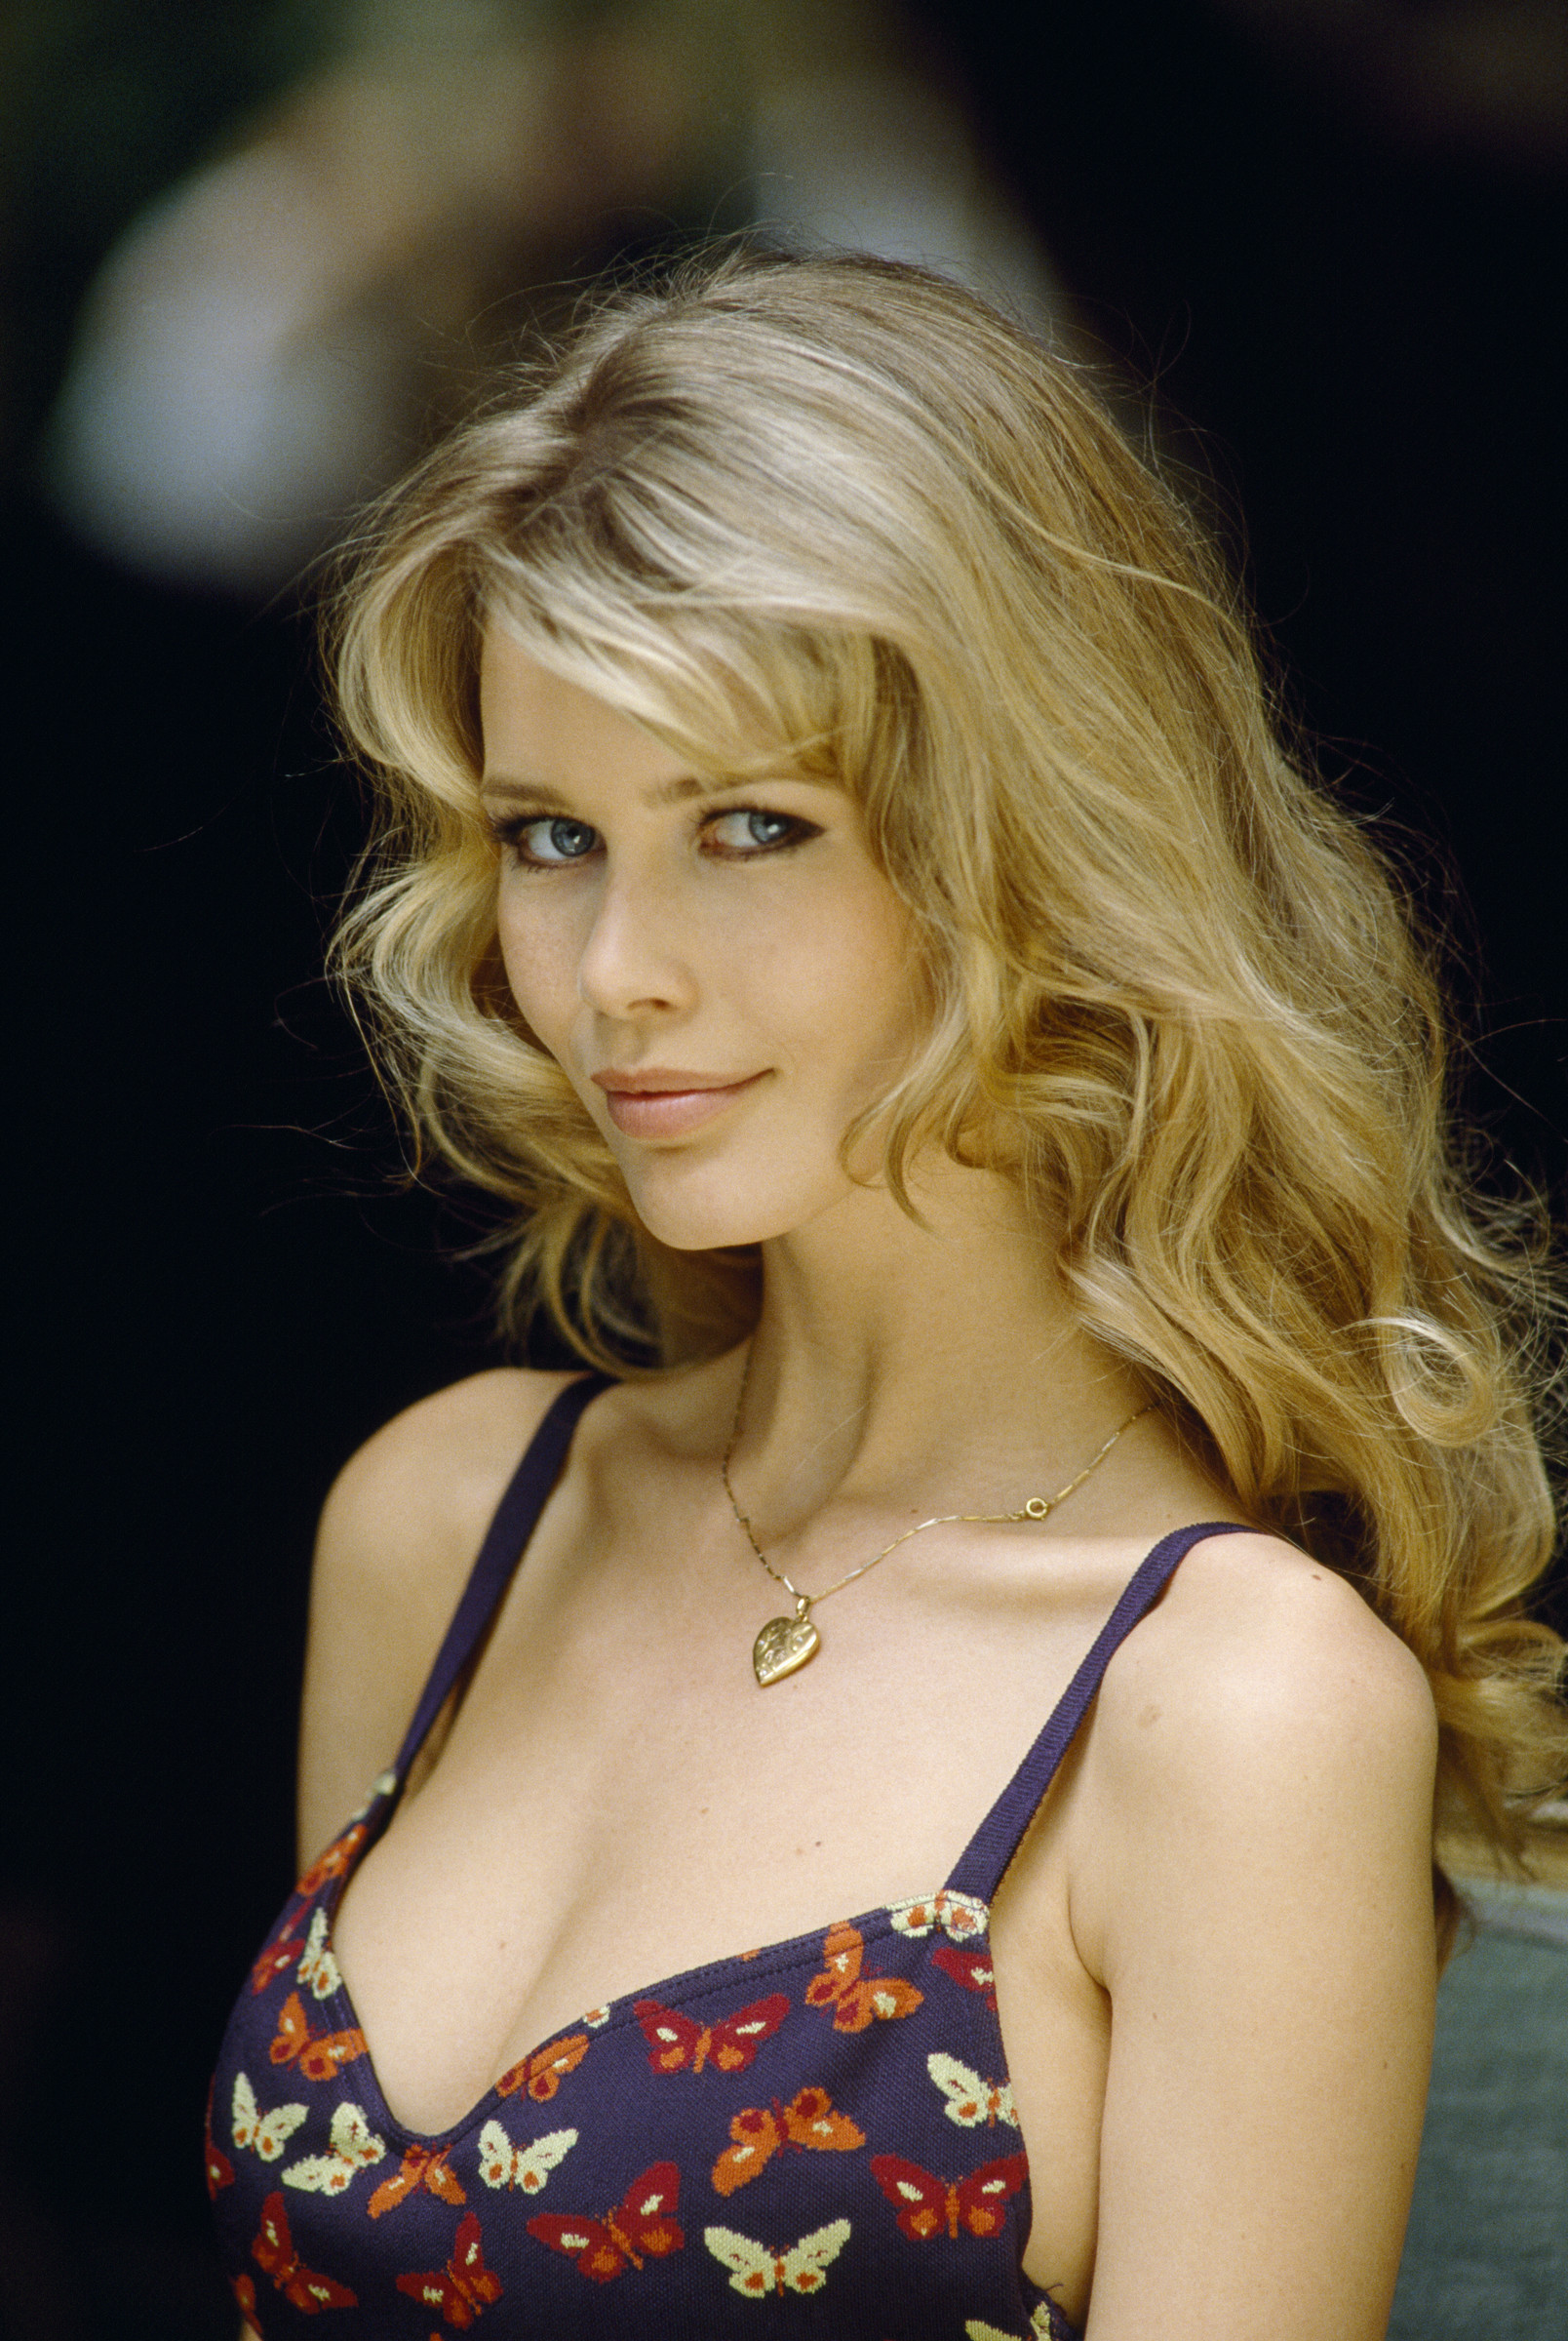 Top Model Claudia Schiffer